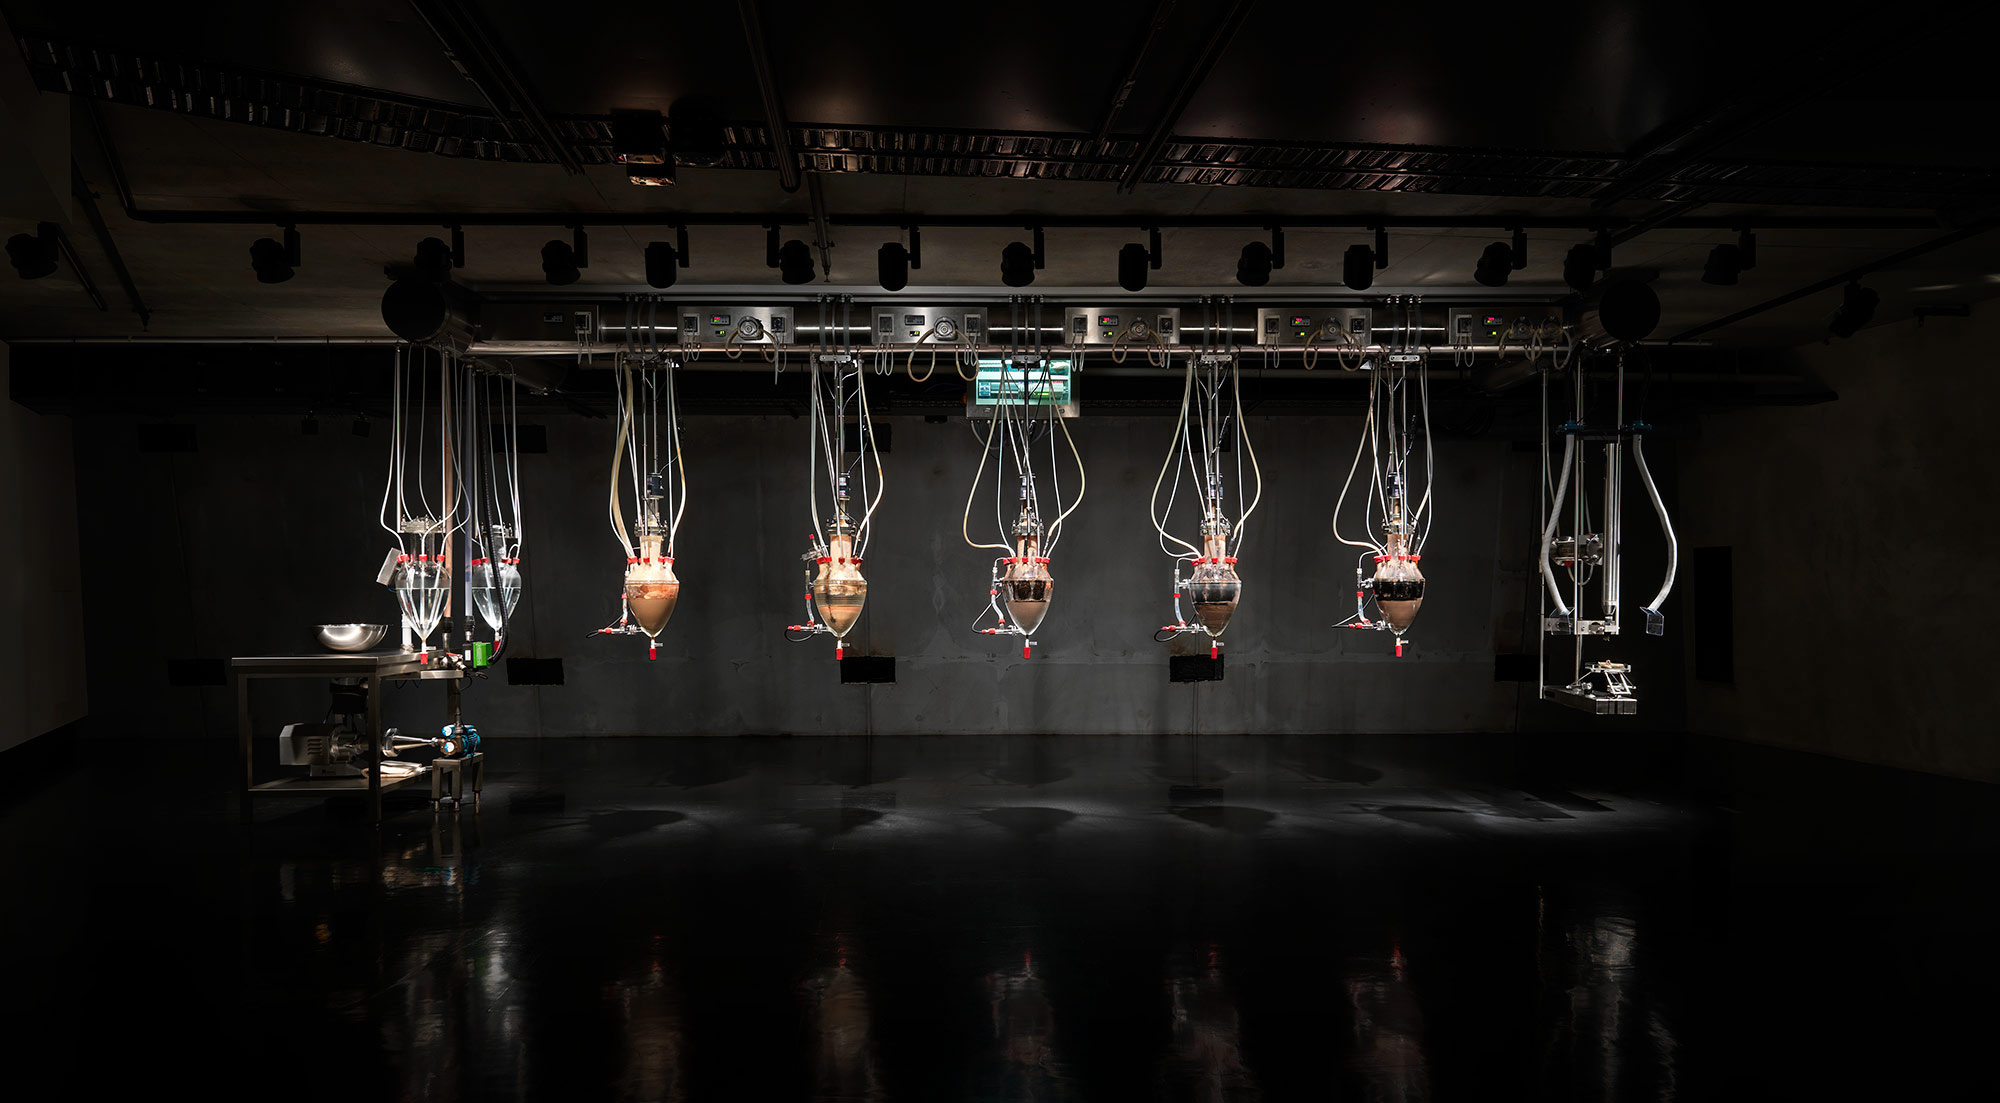 At the Museum of New Art in Tasmania, Australia there is an art installation that replicates the digestive system. It is fed twice daily and then poos at about 2pm every afternoon.